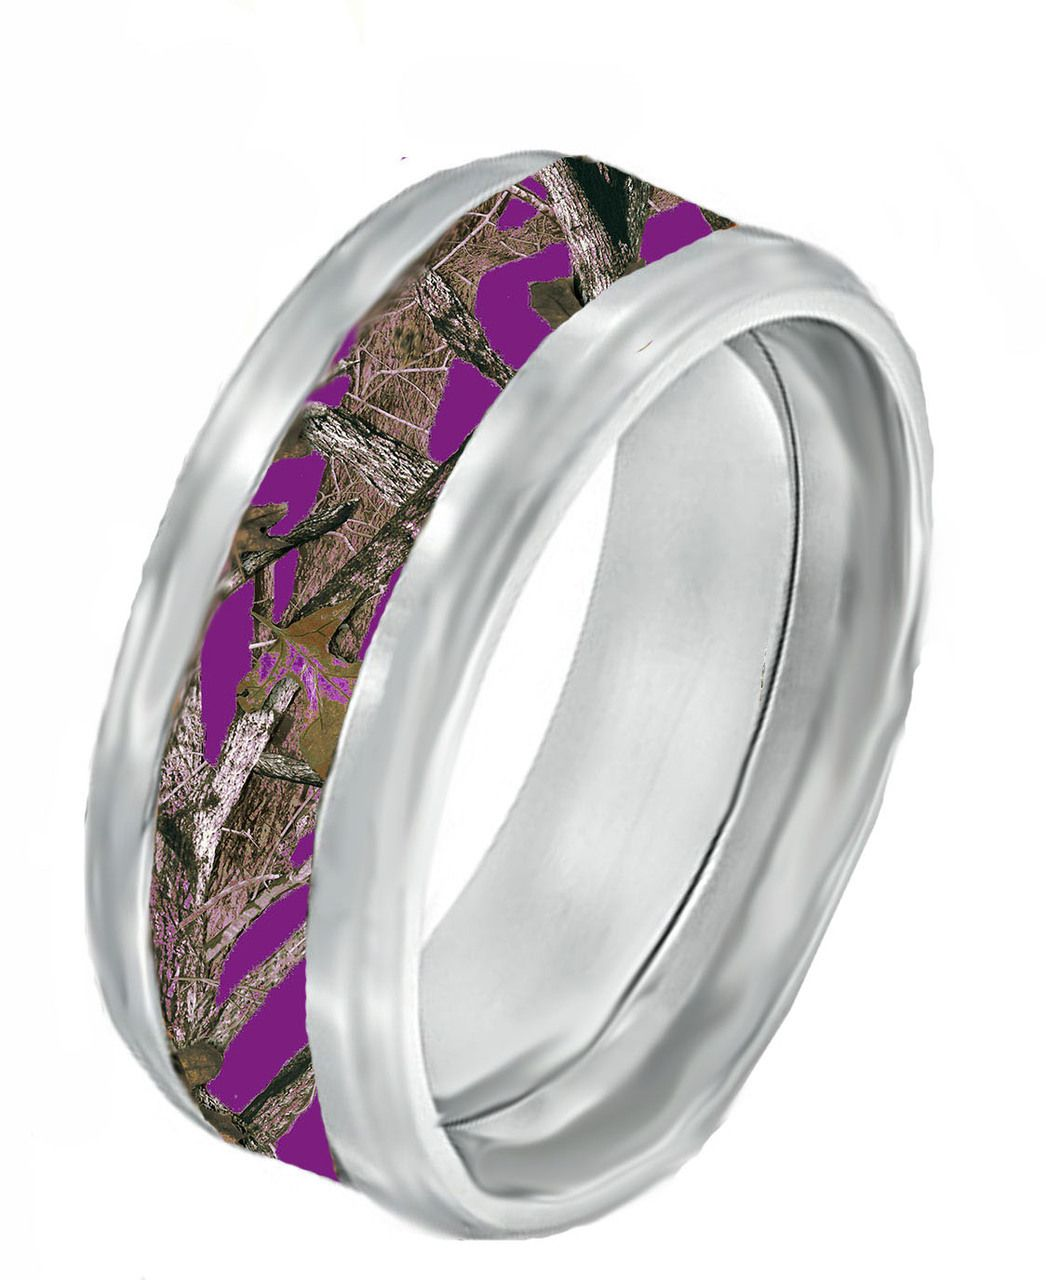 Purple Camo Rings For Her or Him on Black Band Ring Camo